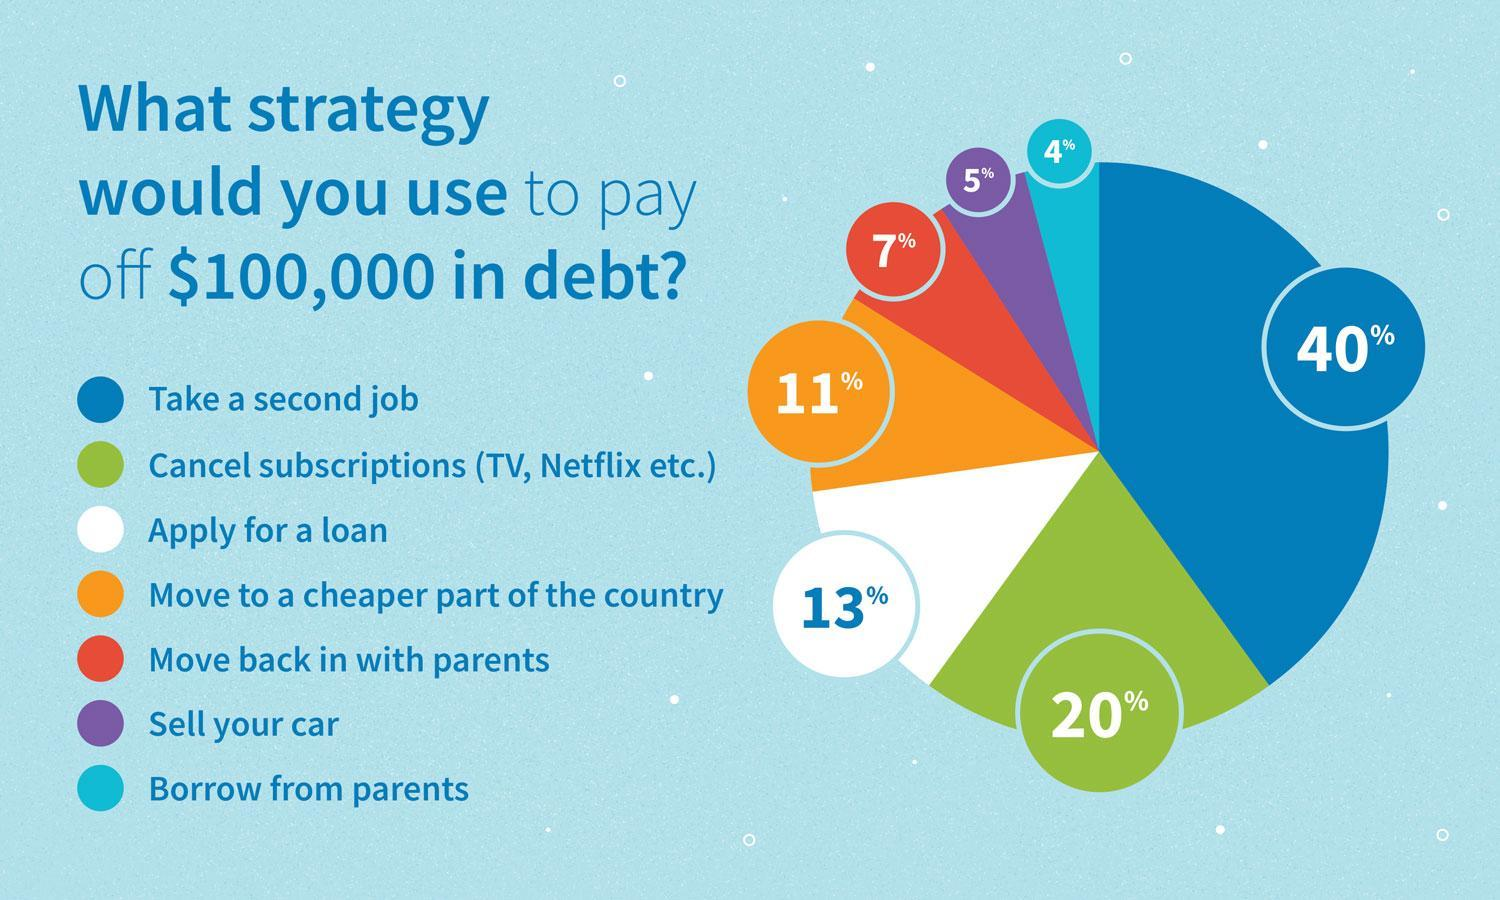 Survey results: what strategy would you use to pay off $100,000 in debt?